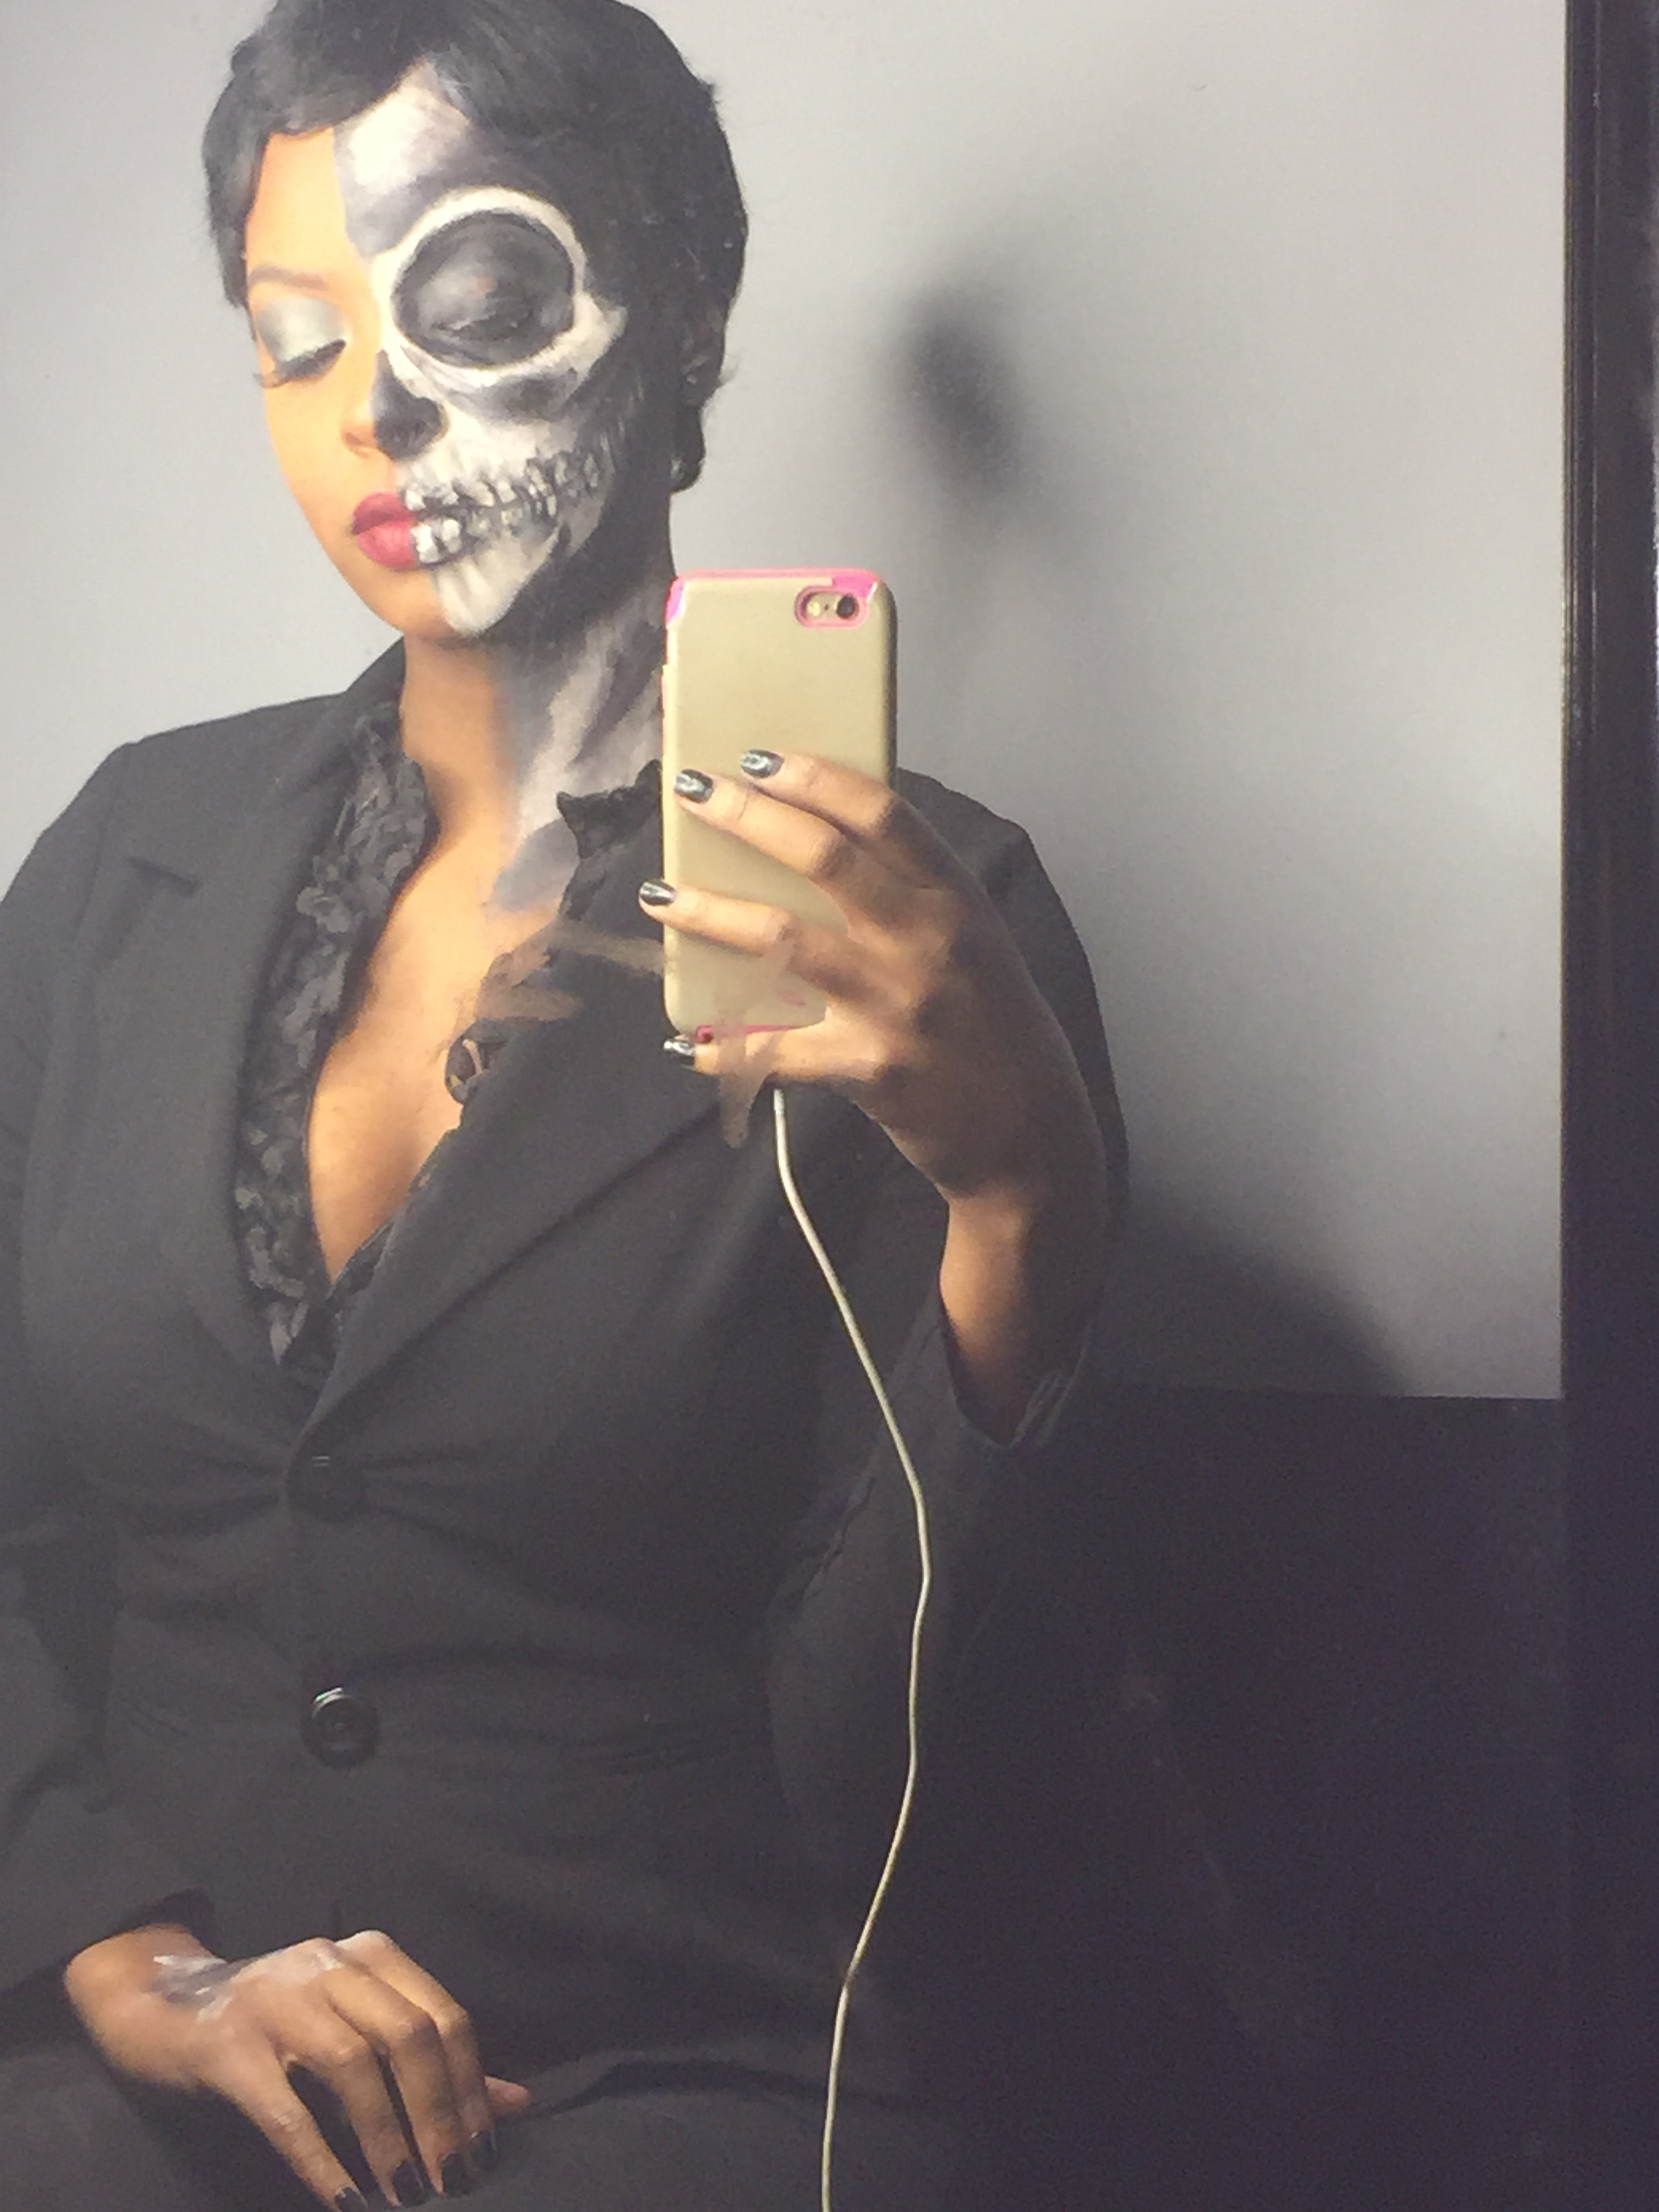 1. First up -  Beyonce ! You can either choose one of your favorite Beyonce looks and recreate it or add a twist and create a half skull look. The half skull look will give you a spooky halloween vibe.